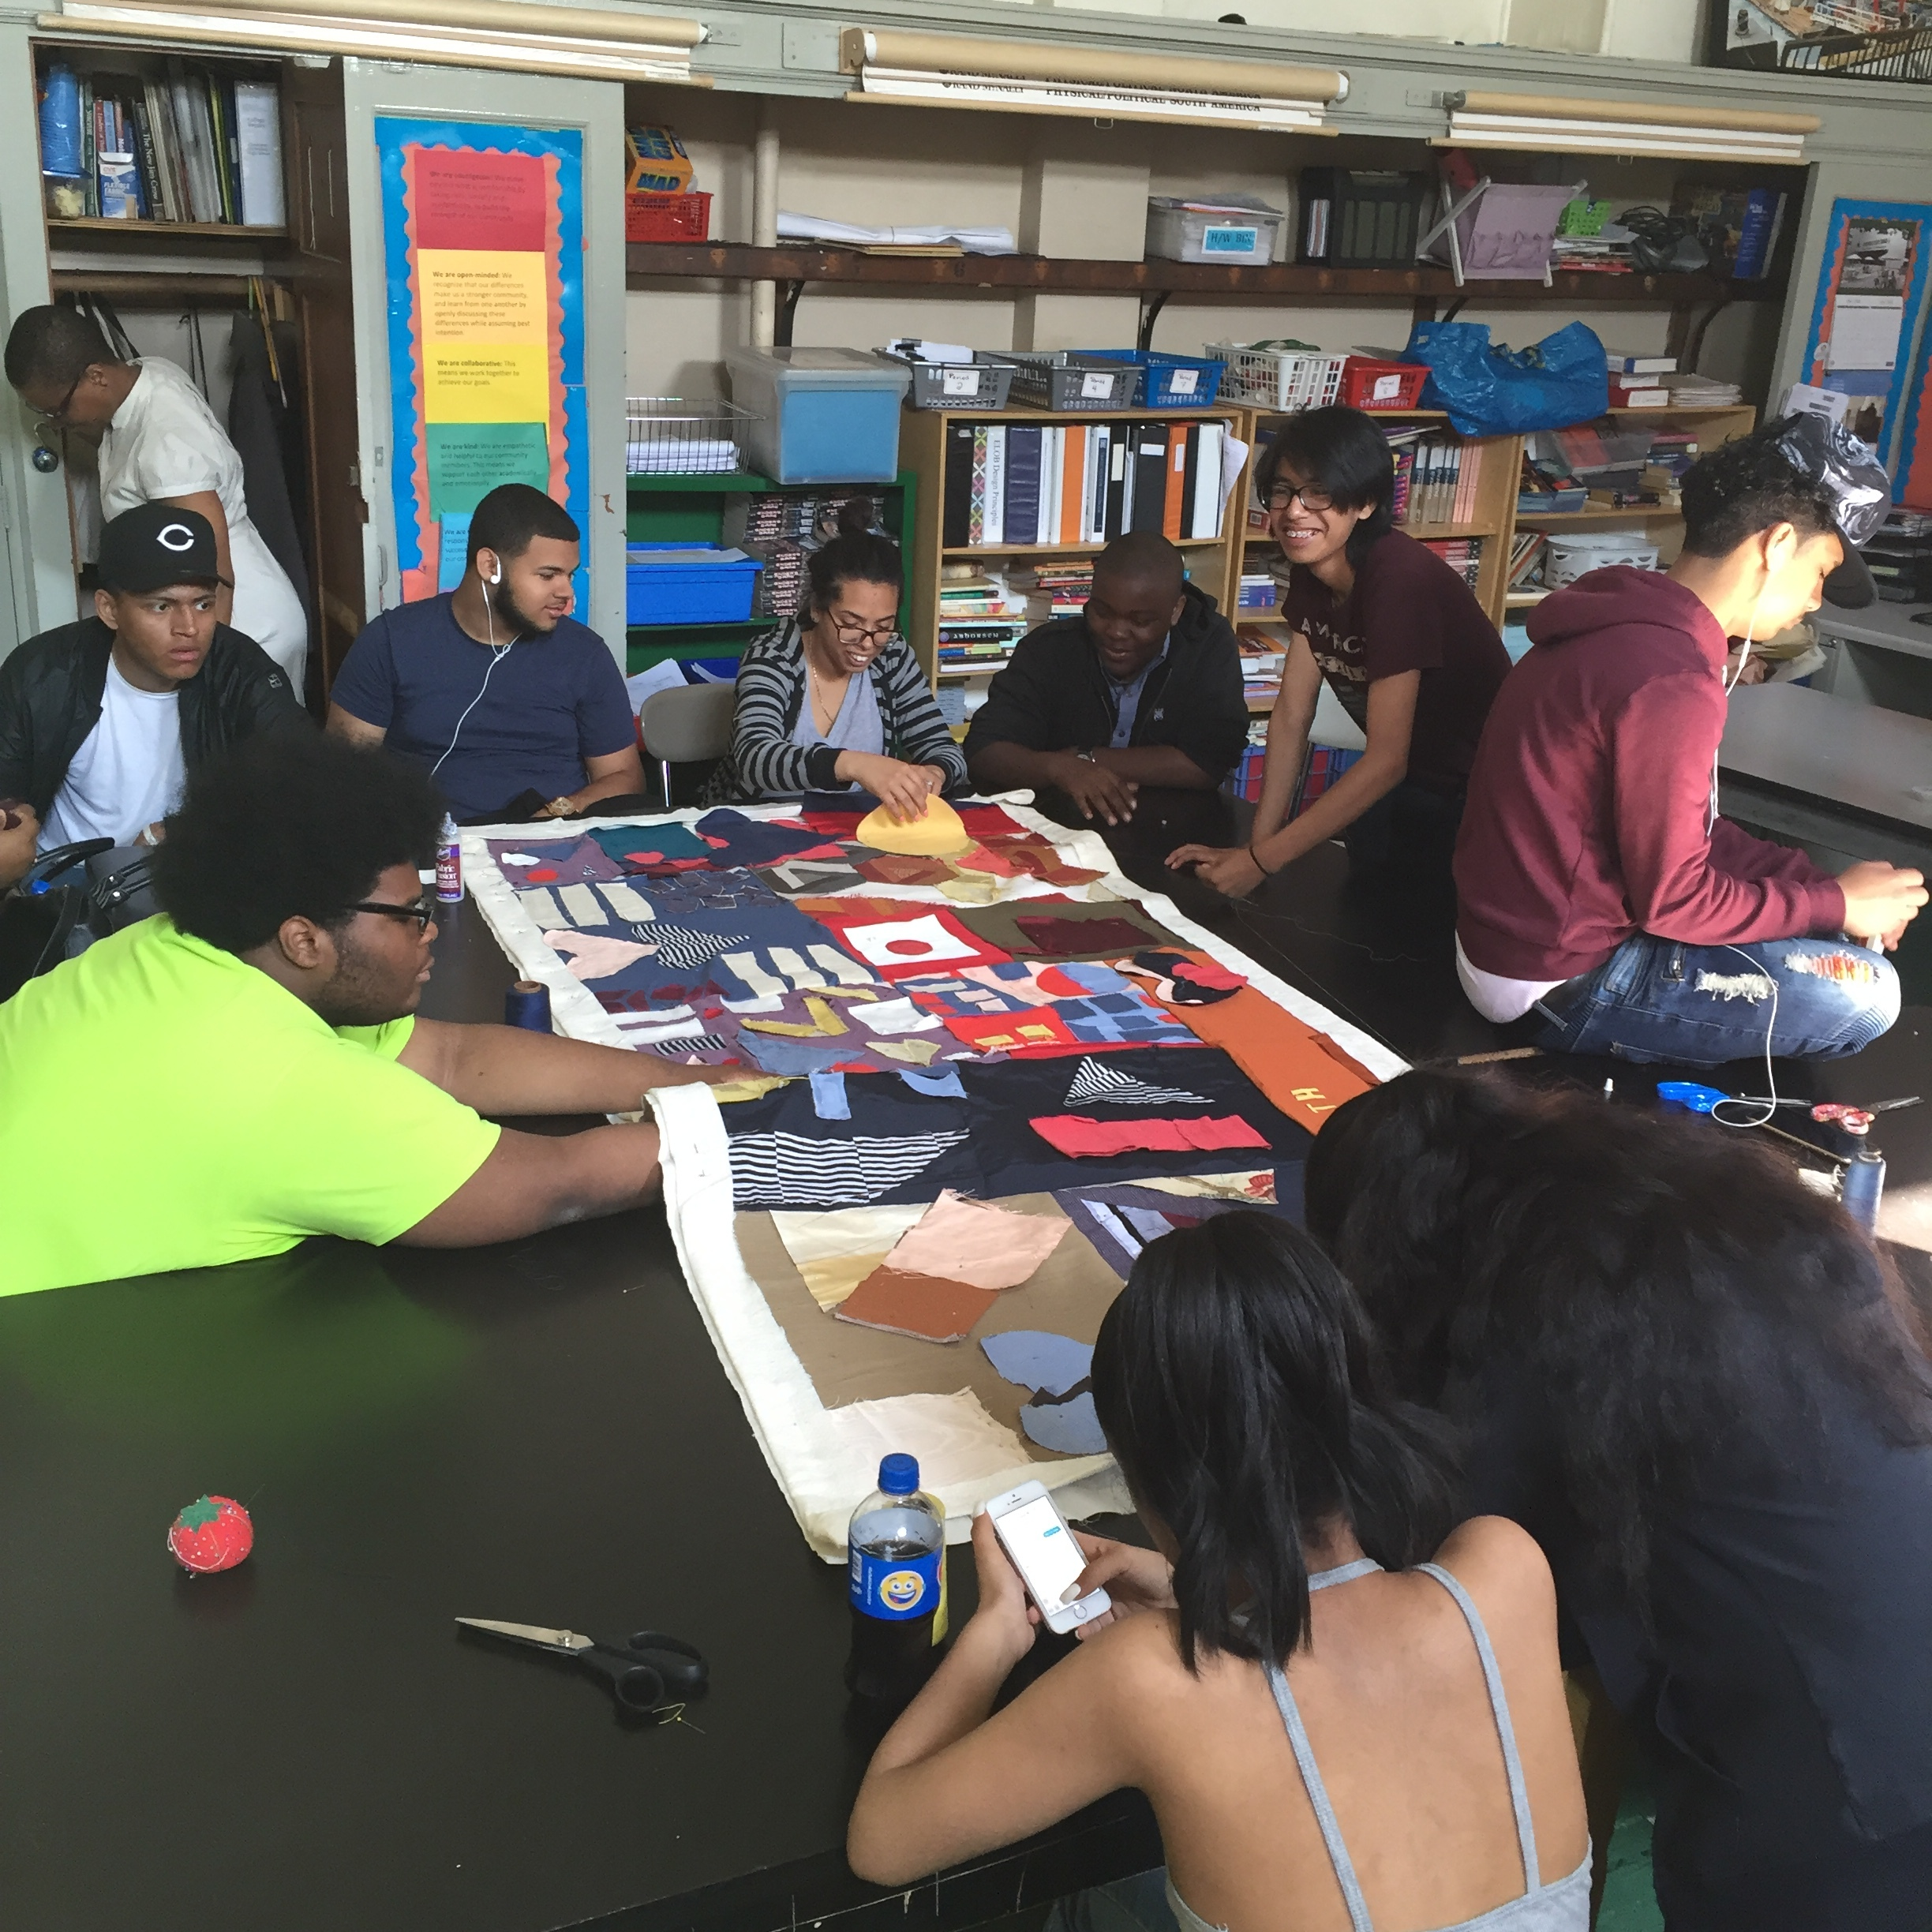 Students sit around a big table to hand sew the quilt together.